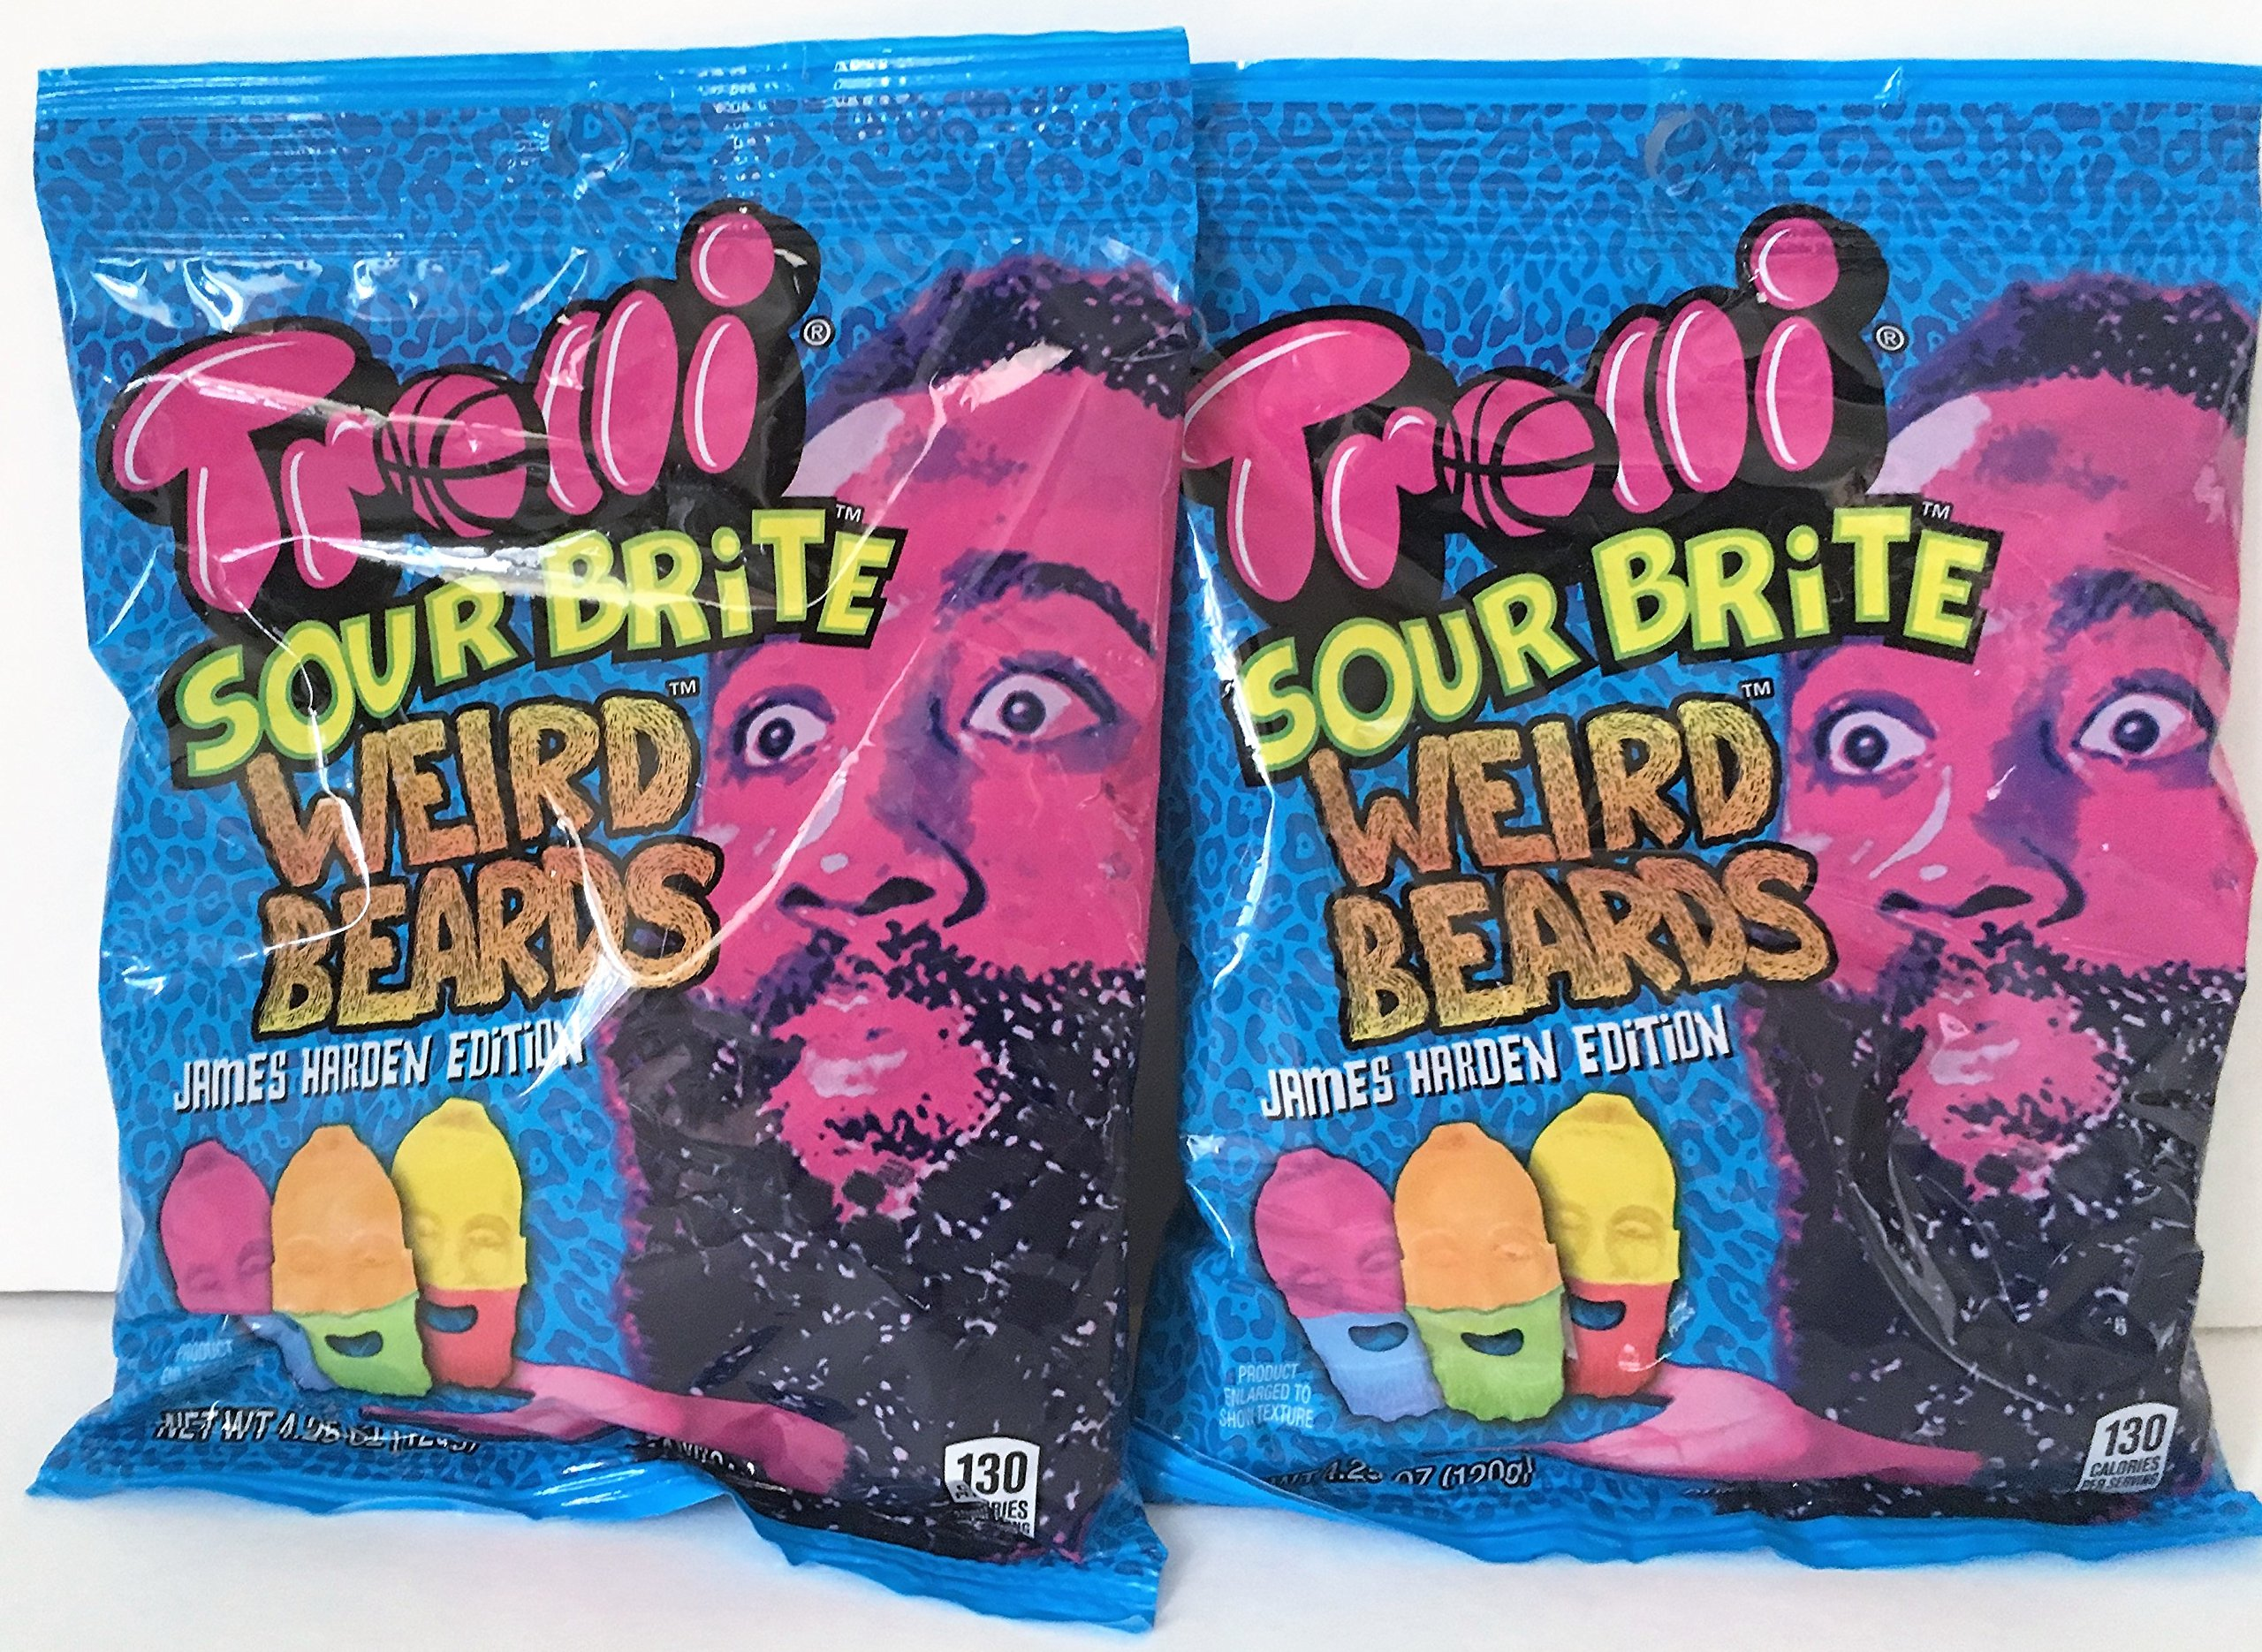 2f31a6c1dd19 Trolli Sour Brite Weird Beards James Harden Edition 4.25 oz Pack of 2 (8.5  Ounces Total)  Amazon.com  Grocery   Gourmet Food